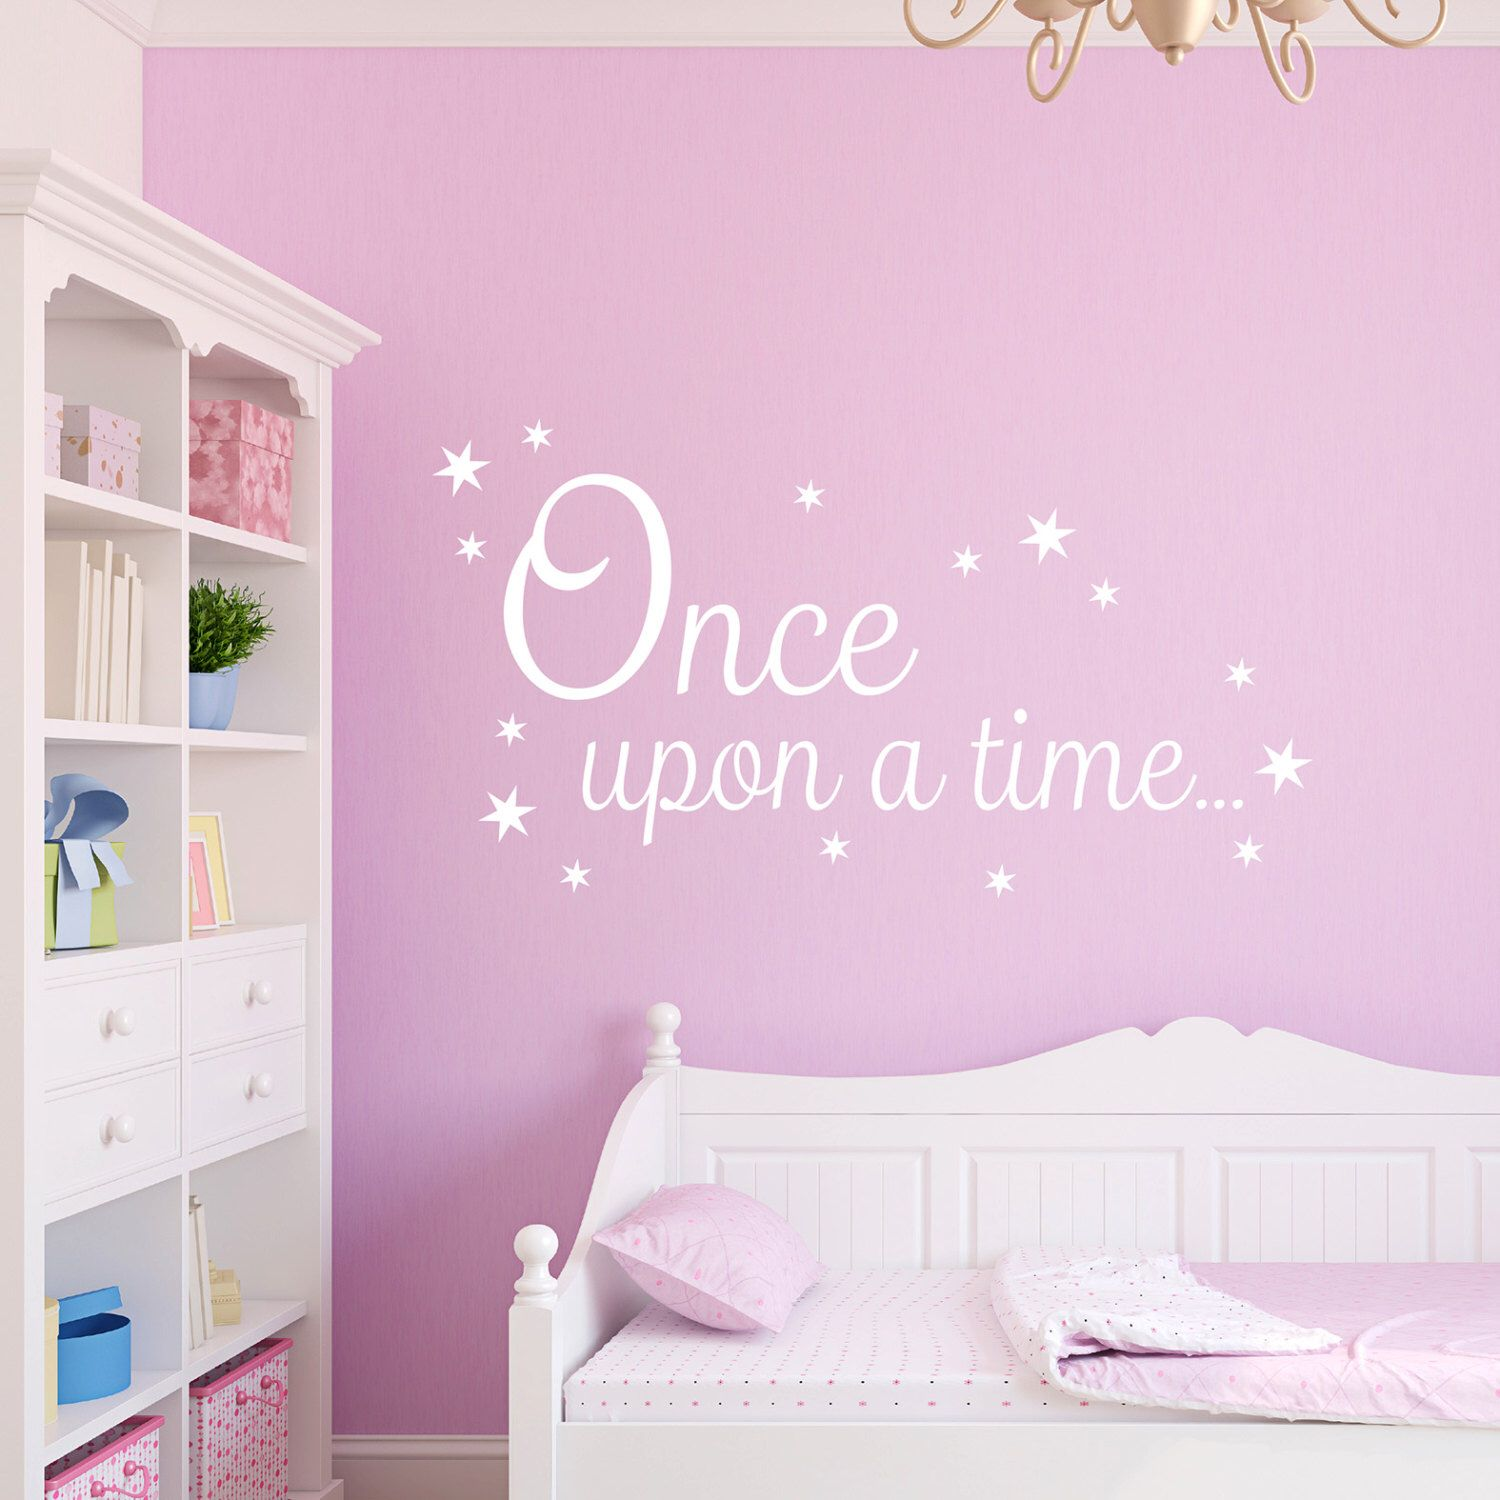 Once Upon A Time Decal Book Corner Quote Vinyl Wall Sticker By - Vinyl wall decals books